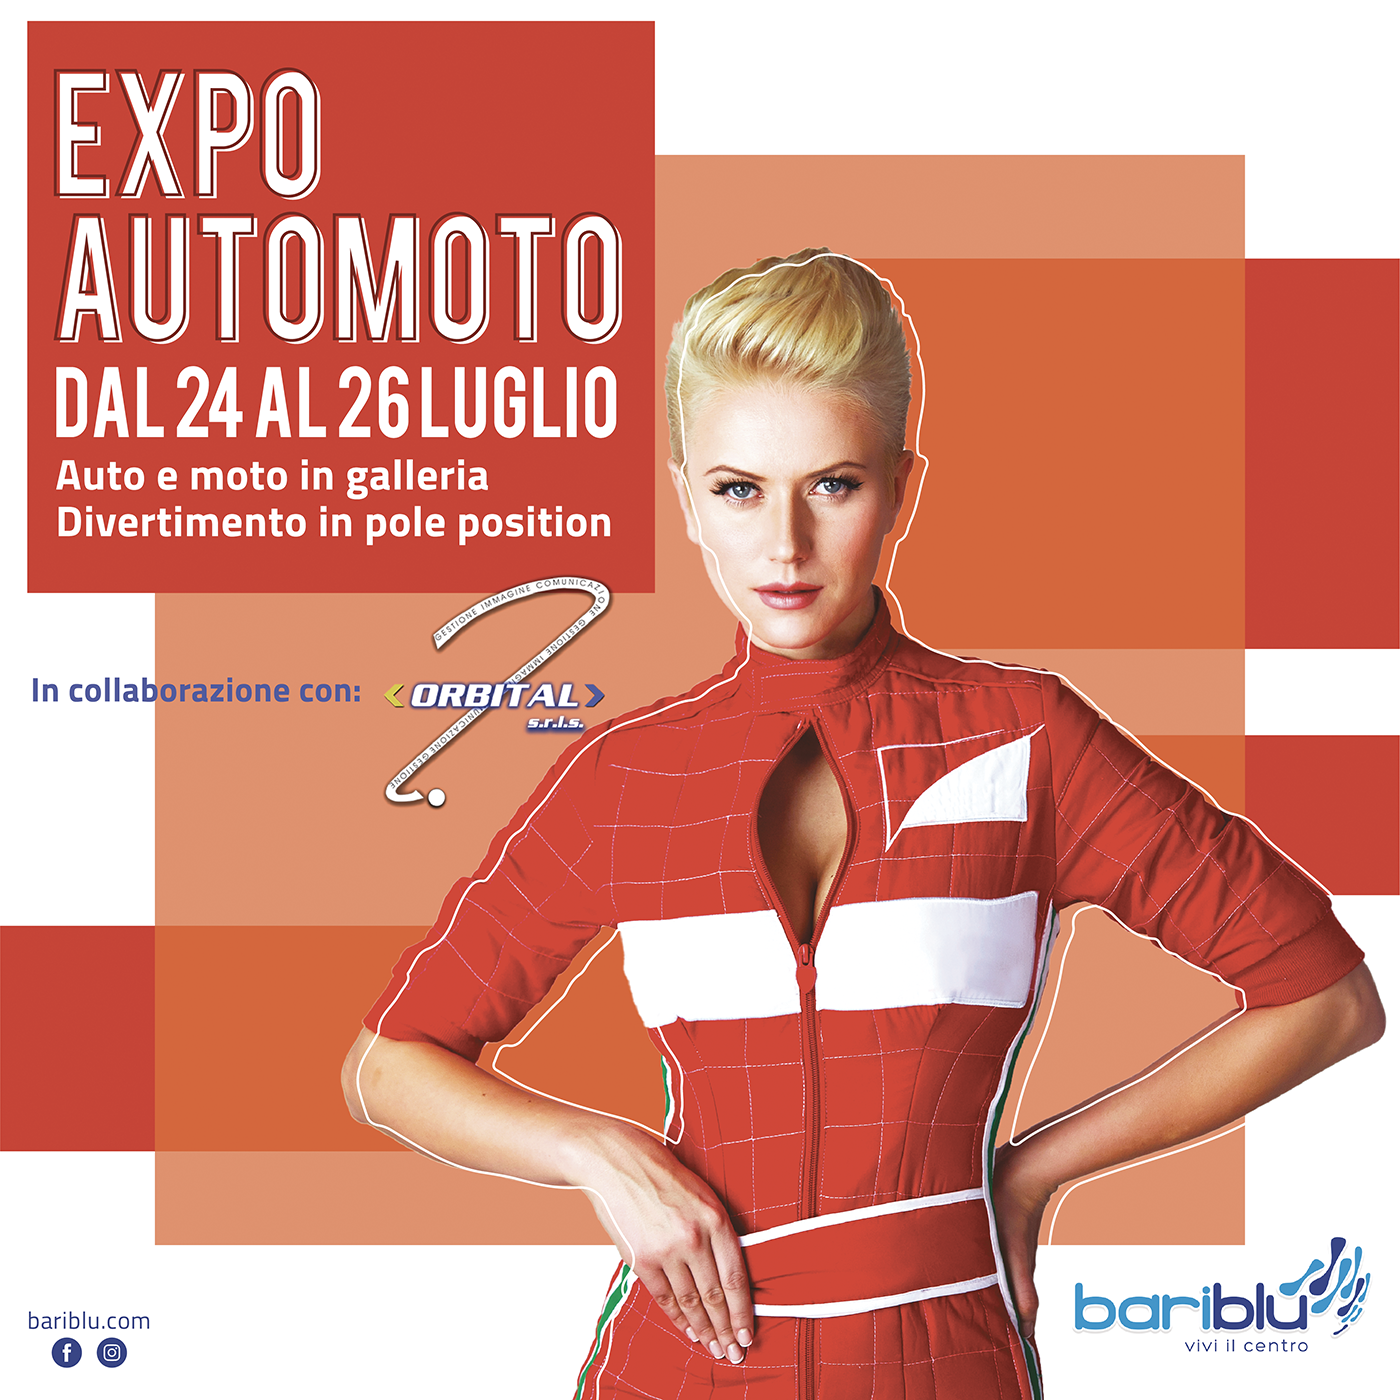 Expo automoto